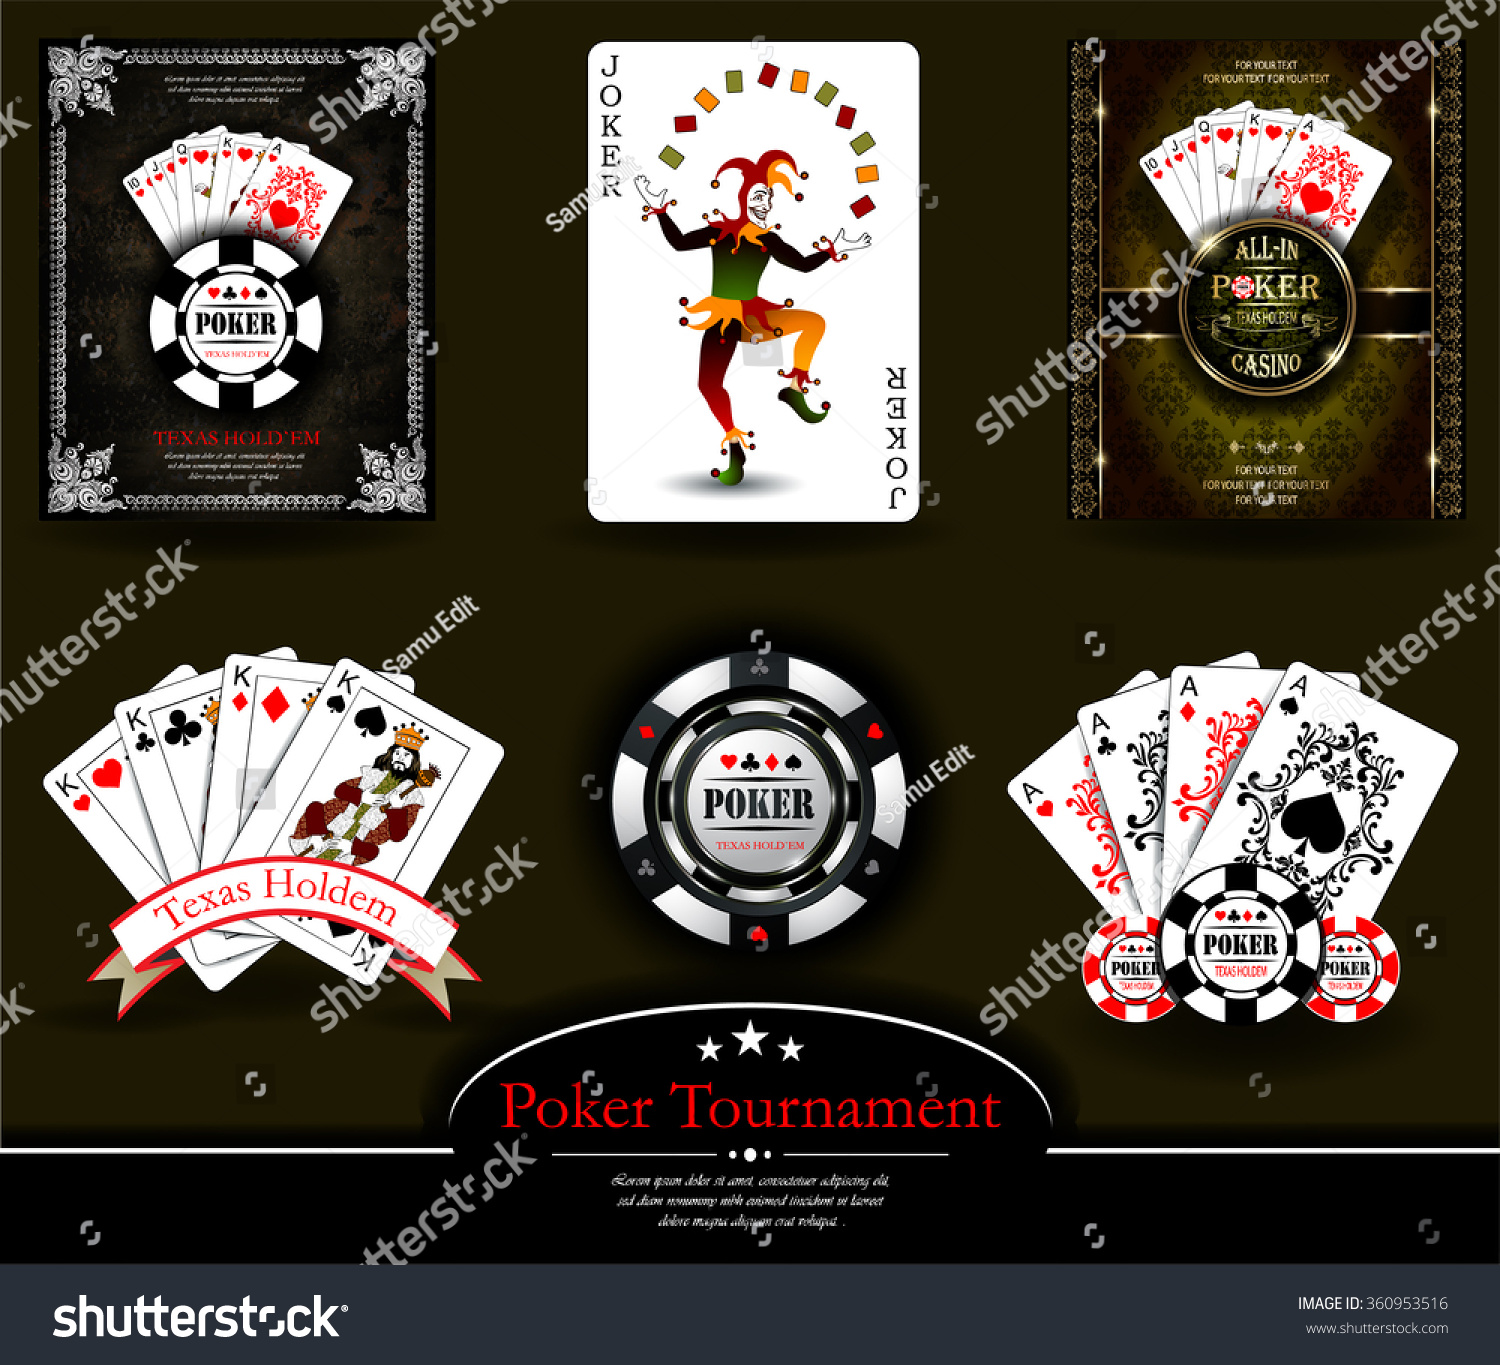 Torneios poker casino lisboa casino poker tightpoker video